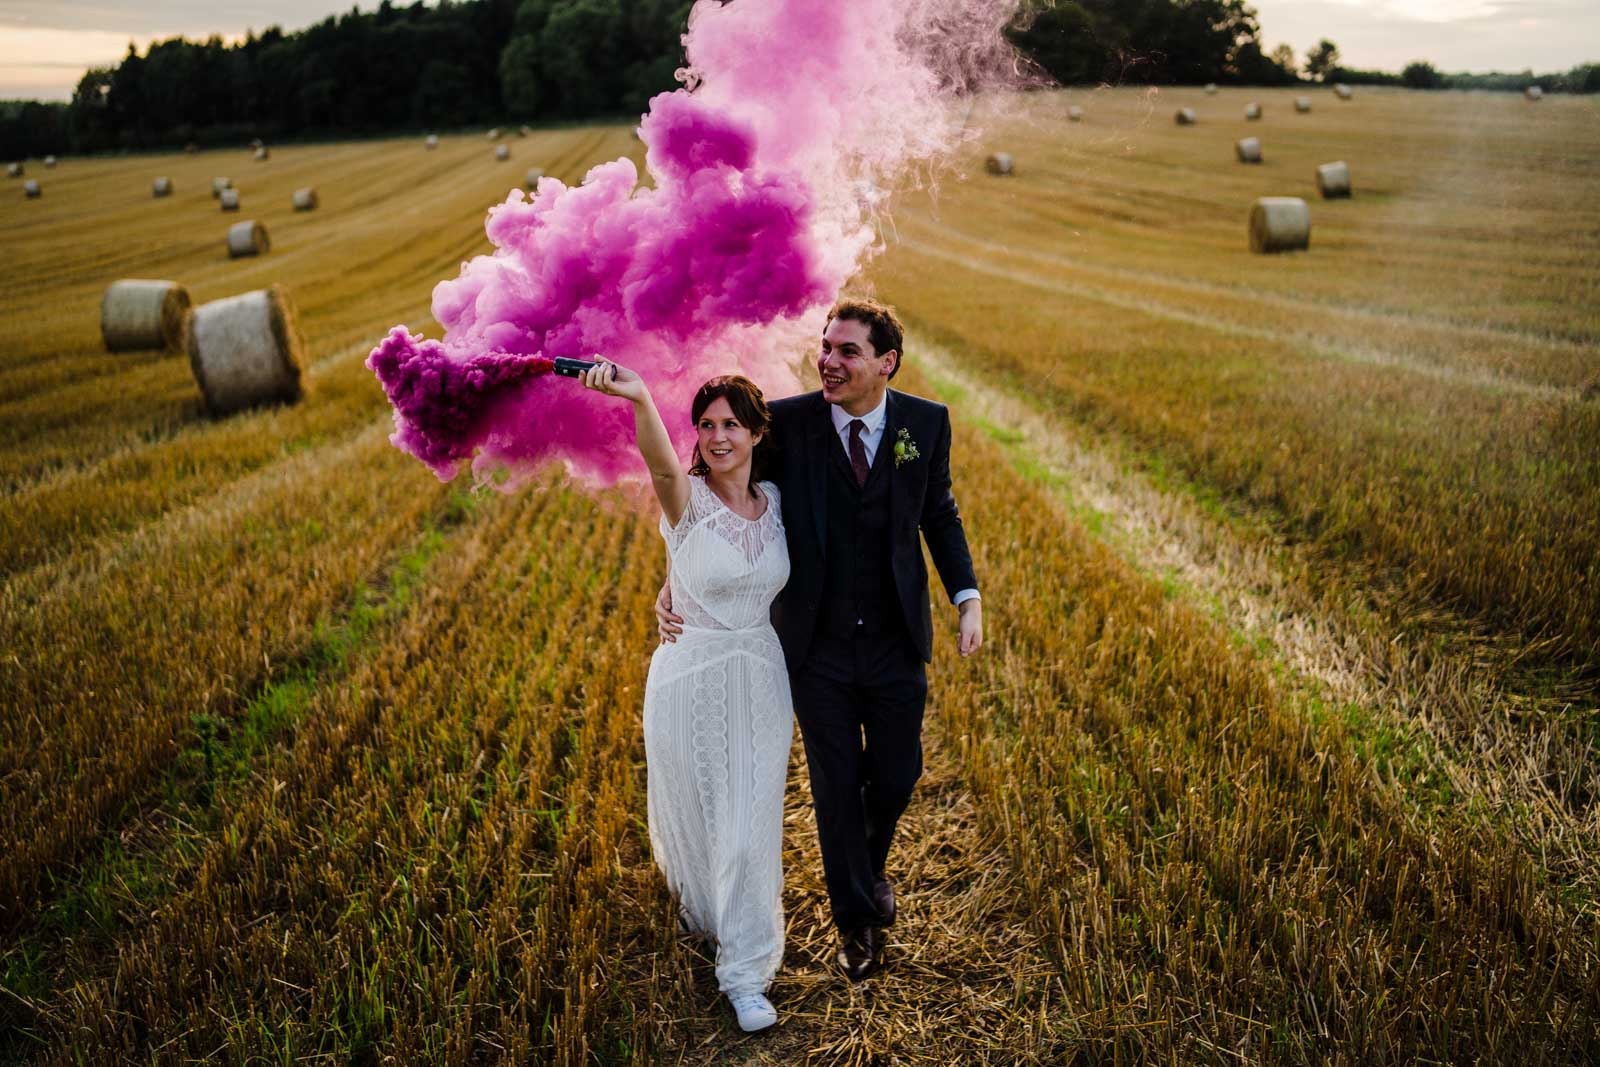 Swallows nest wedding wedding couple holding a pink flare